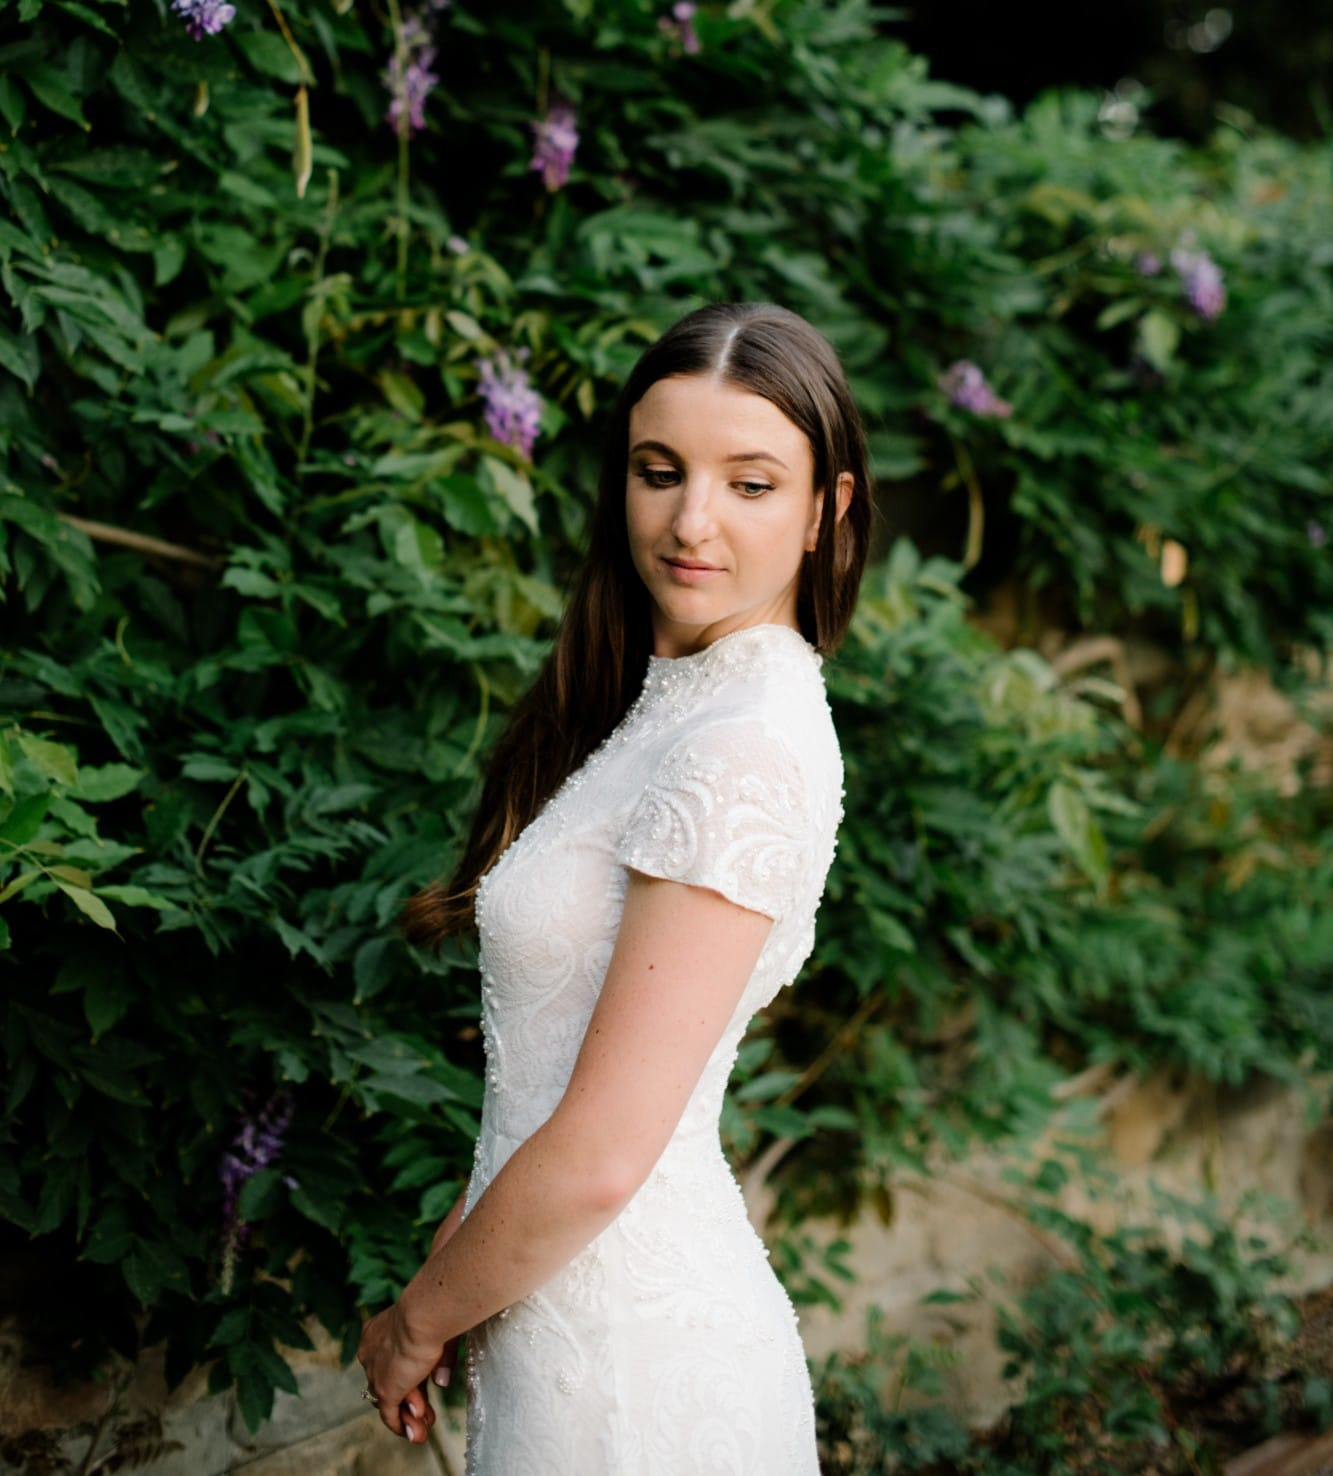 Wedding Gown Alterations Nyc: Ersa Atelier 'Charming' Dress